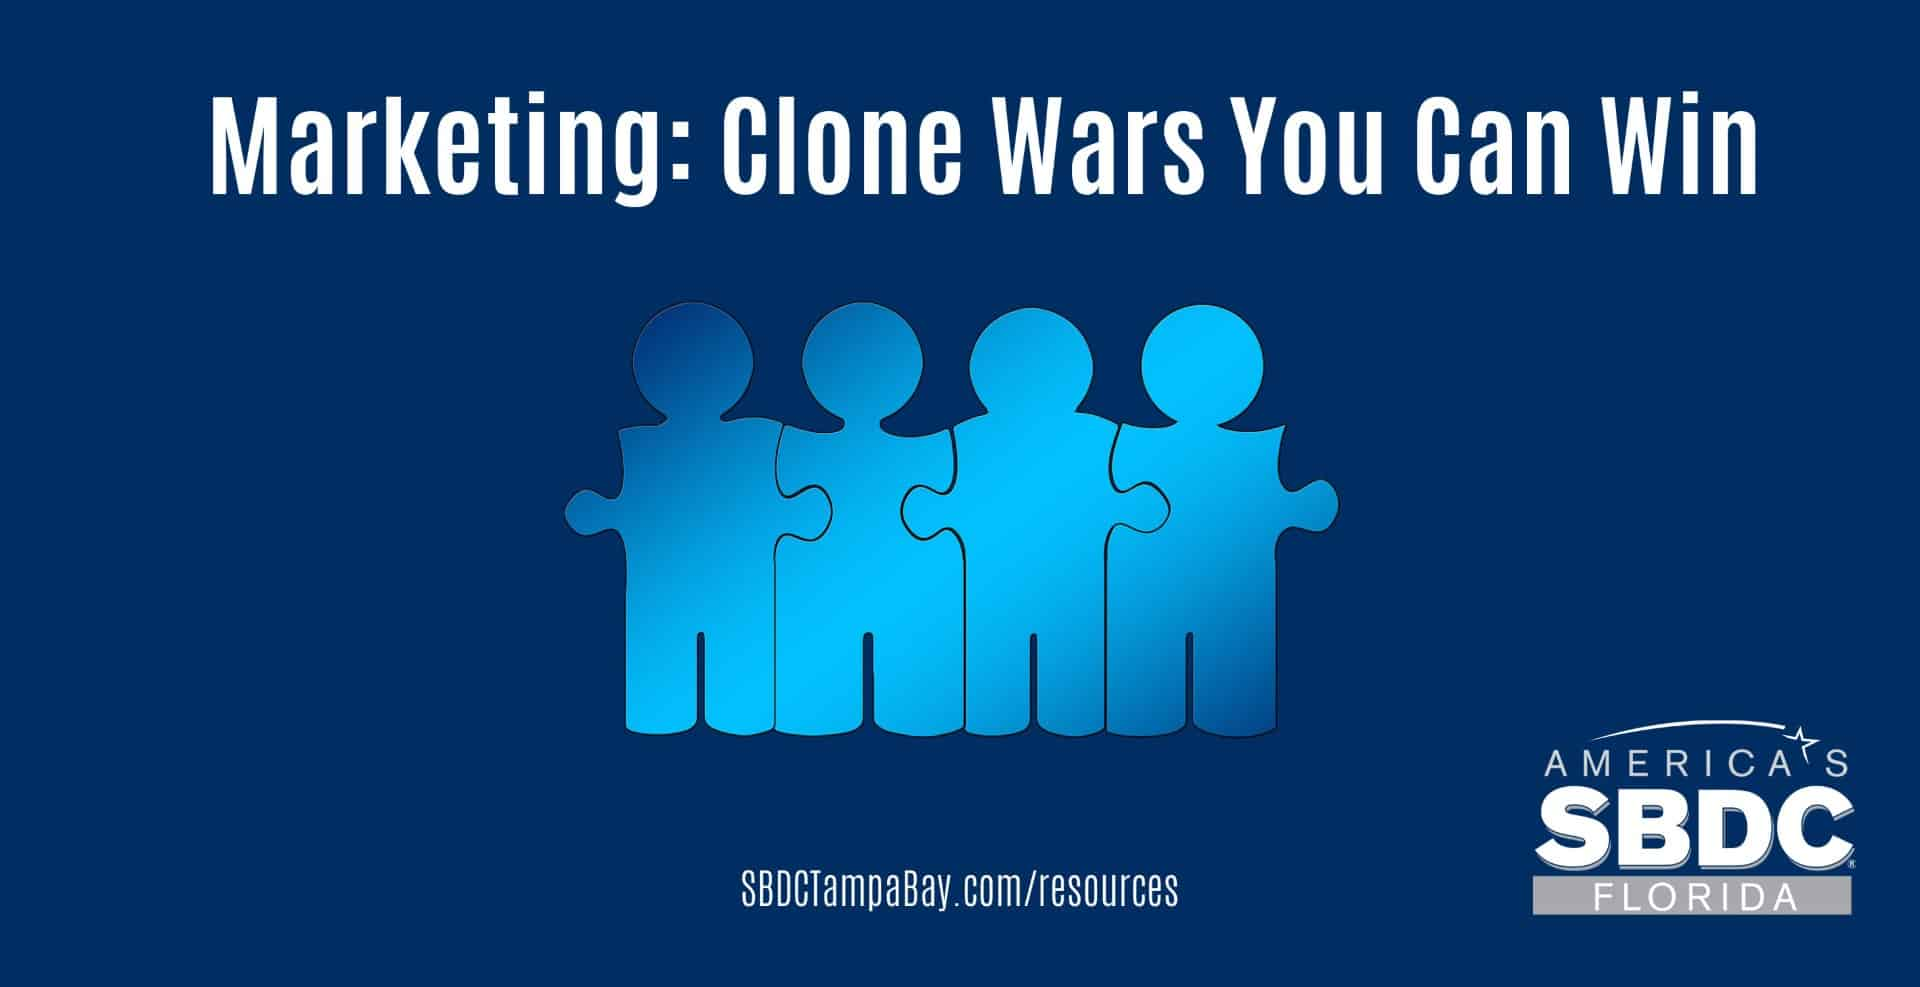 Marketing: Clone Wars you Can Win